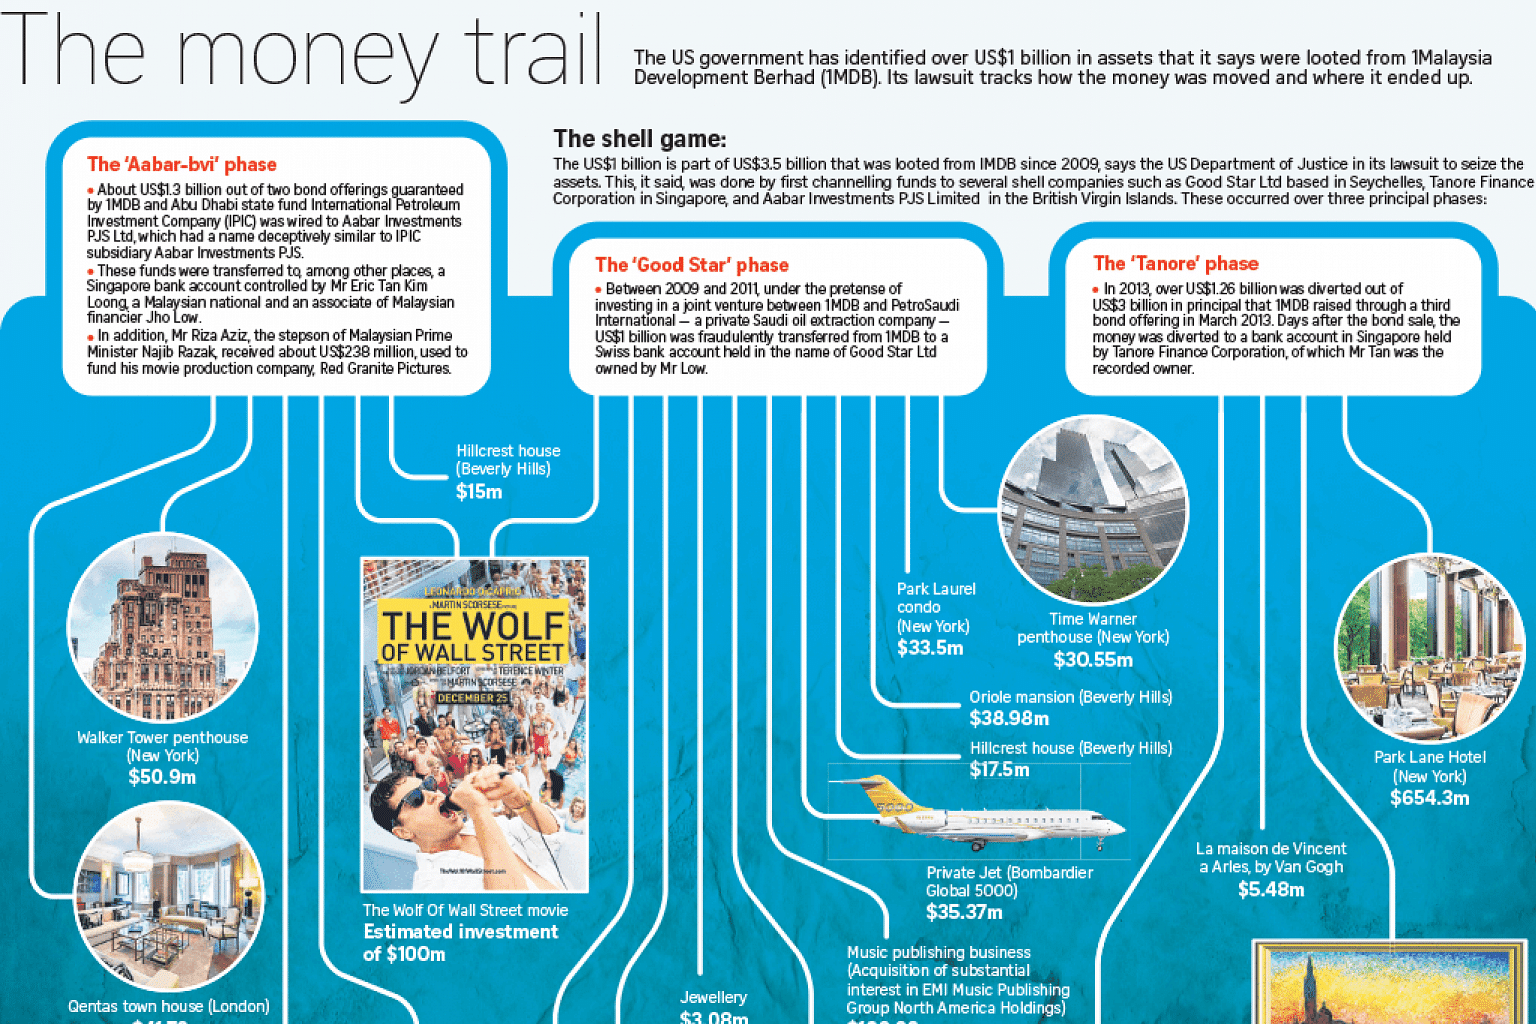 The 1MDB money trail